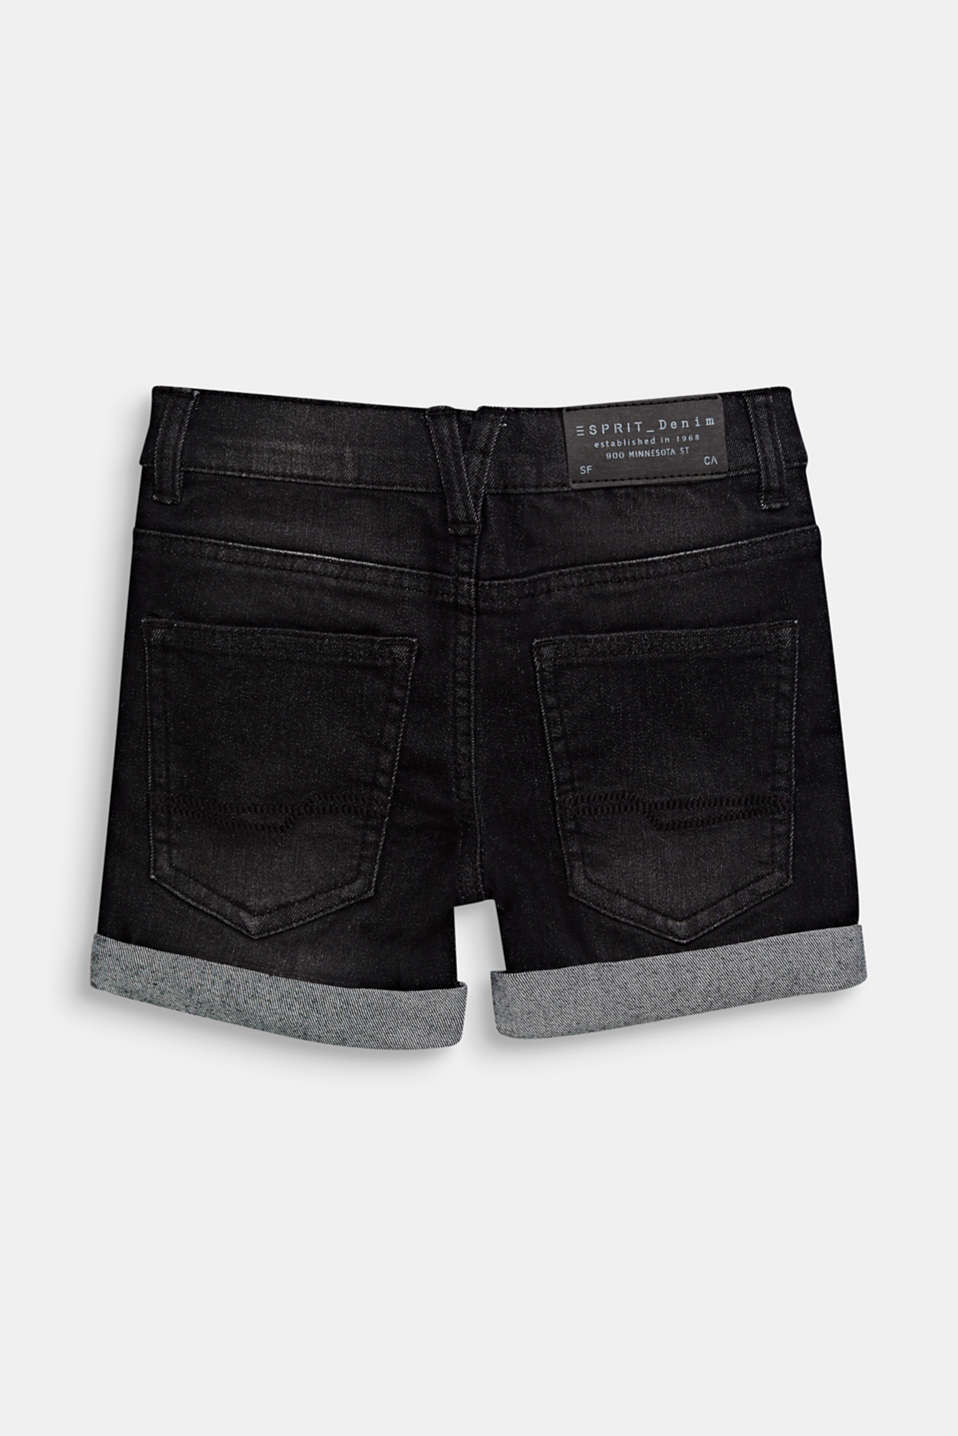 Stretch denim shorts with turn-ups and an adjustable waistband, BLACK DENIM, detail image number 1